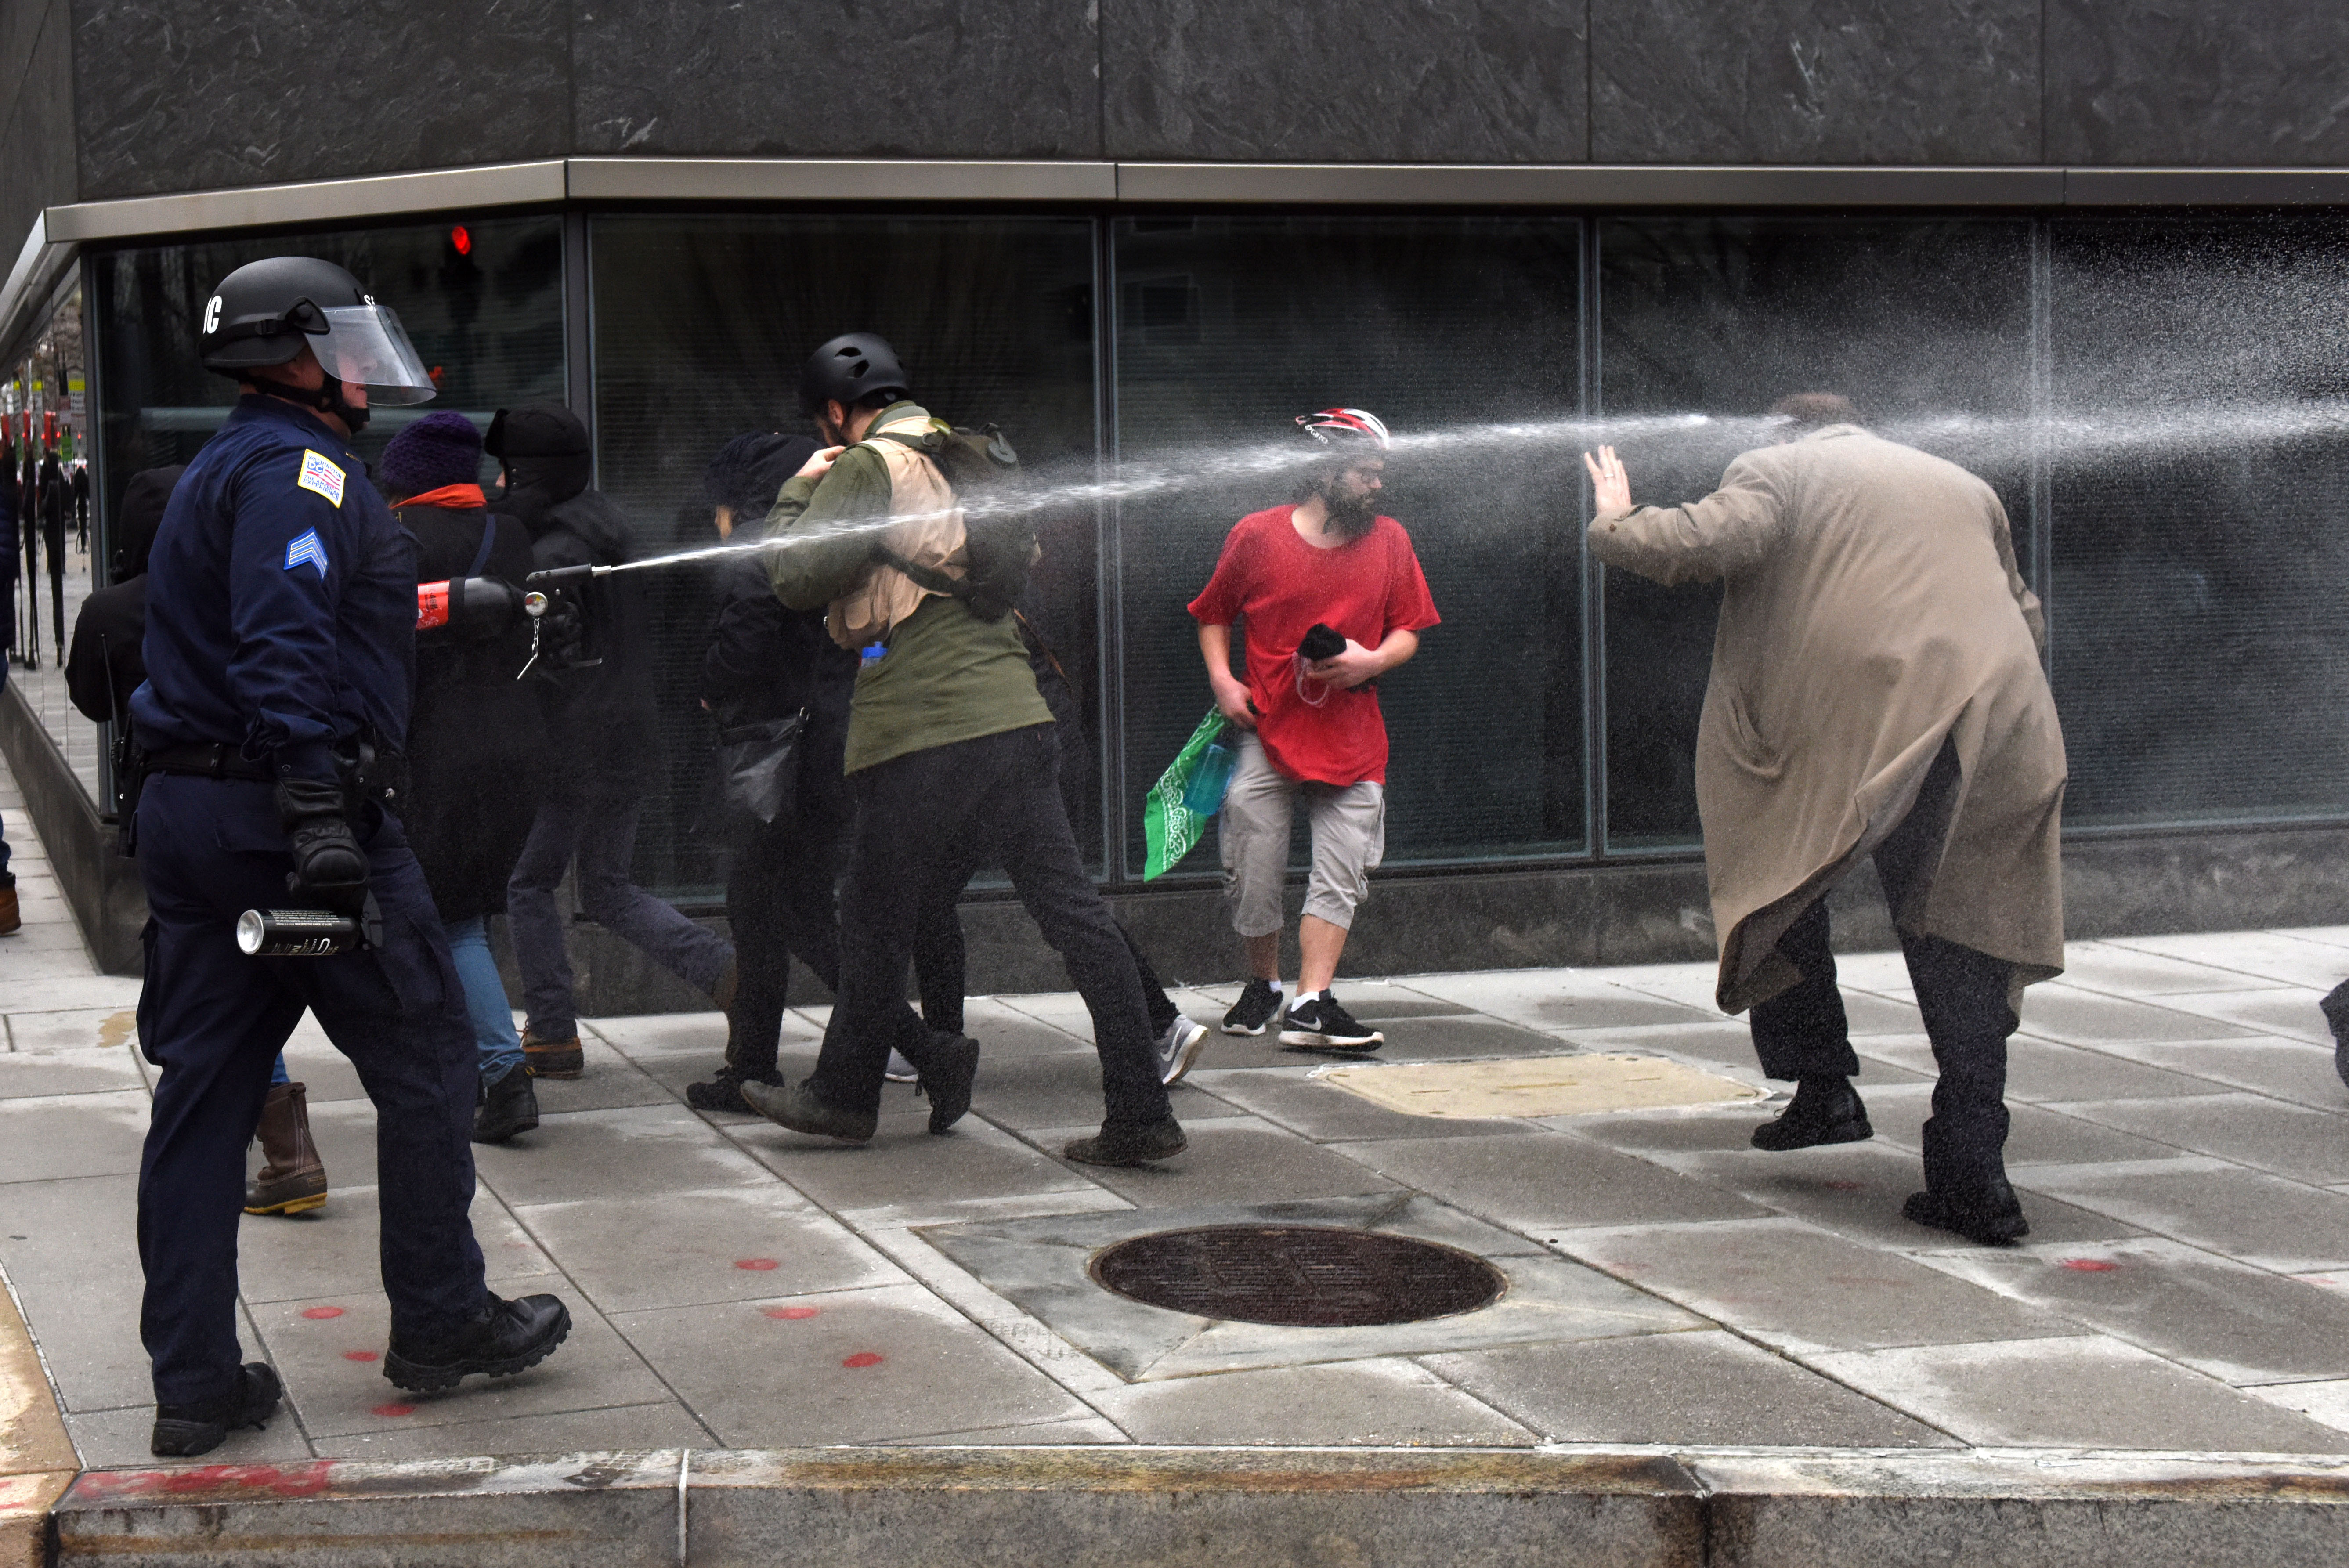 A man is pepper sprayed at the corner of 12th and I St. N.W. in Washington on Jan. 20. Police responded to a vandalizing group of protesters with pepper spray to disperse the protesters. (Washington Post photo by Michael Robinson Chavez)